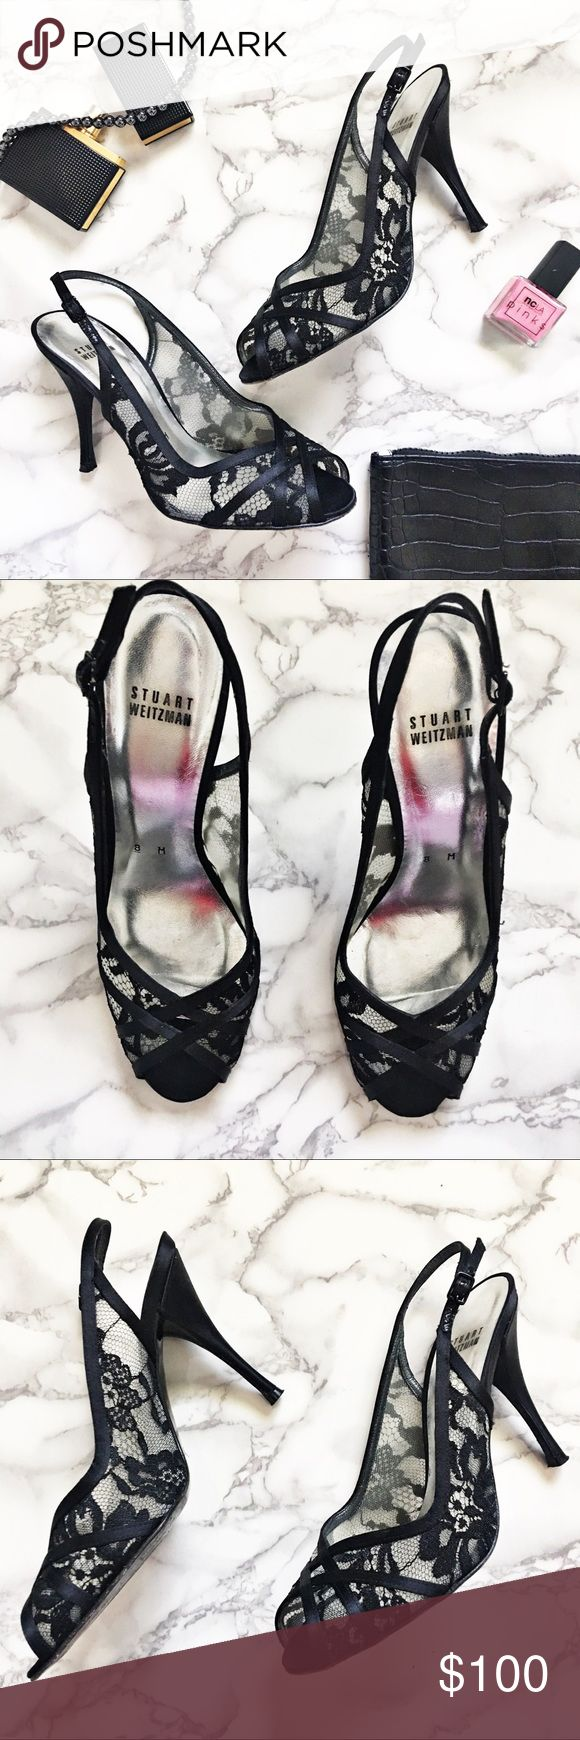 "Stuart Weitzman Floral Lace Peep Toe Heels Black satin peep toe heels by Stuart Weitzman.  They have a soft leather lined footbed and Floral Lace.  Shoes are in good condition except for wear on soles.  Heel measures approximately 3.75"". Stuart Weitzman Shoes Heels"